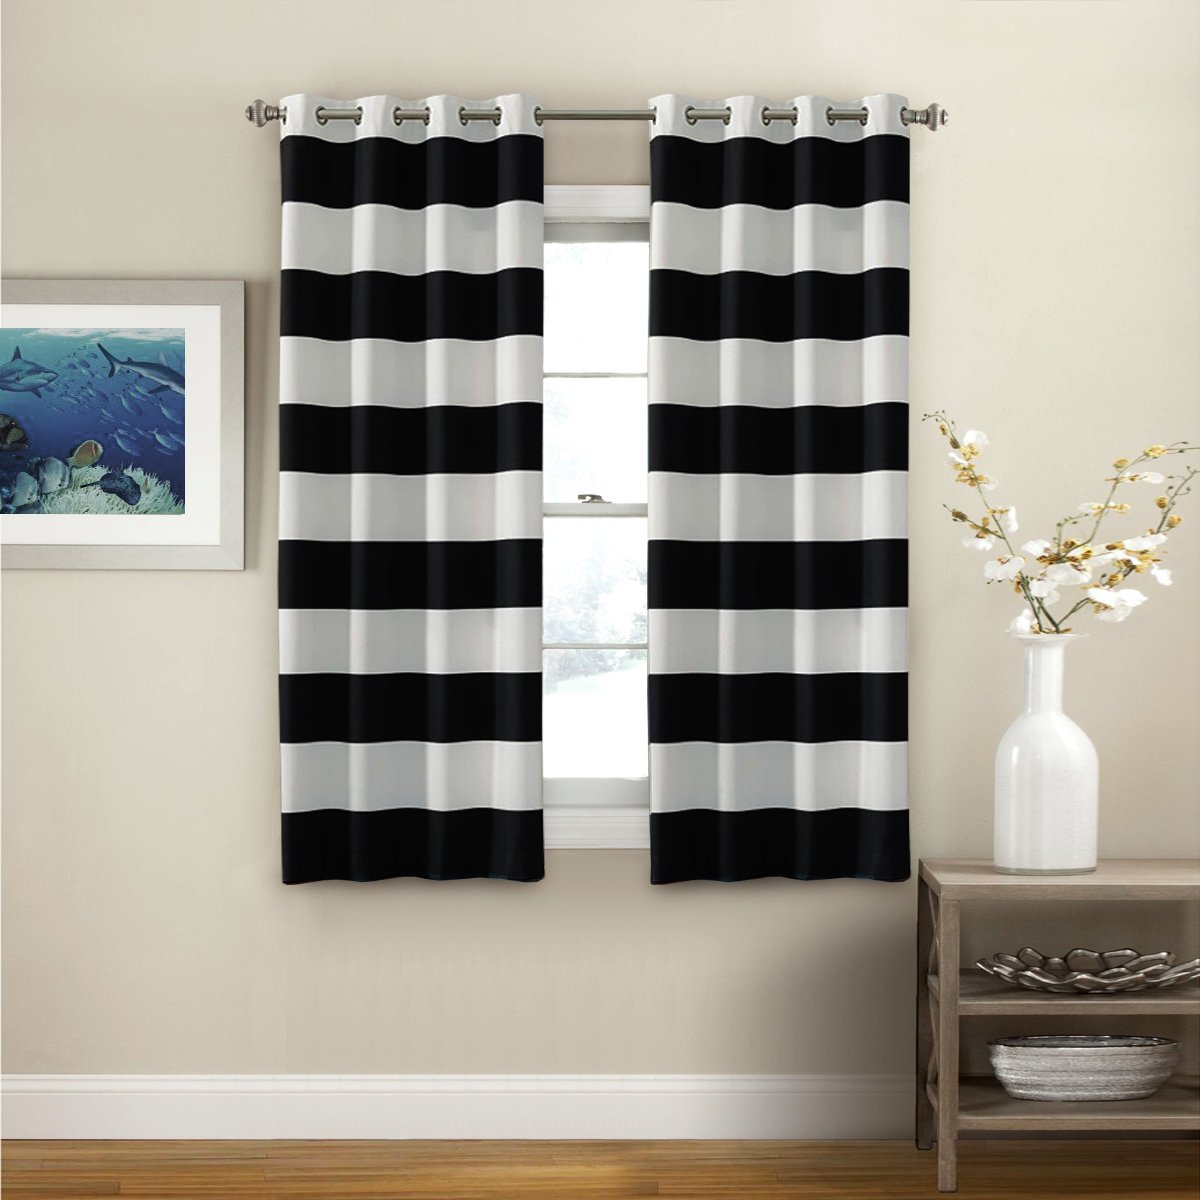 Turquoize Nautical Blackout Curtains(2 PANELS), Room Darkening, Grommet Top, Light Blocking Curtains